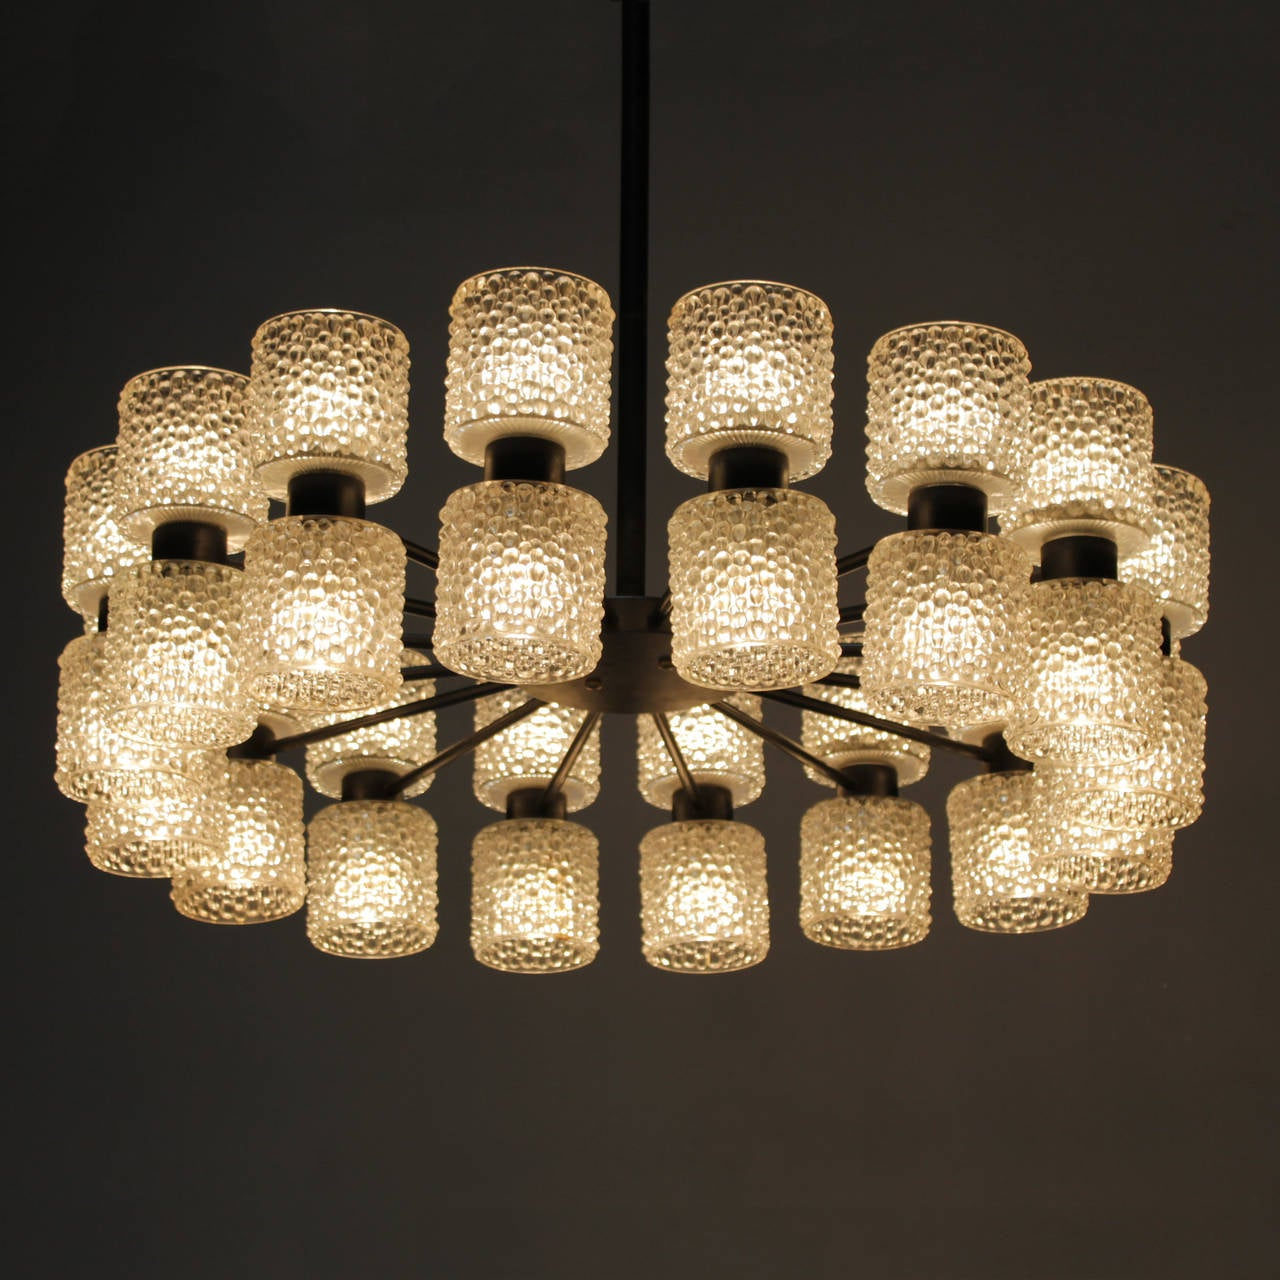 Large Collection Of Matching Raak Lighting Fixtures For